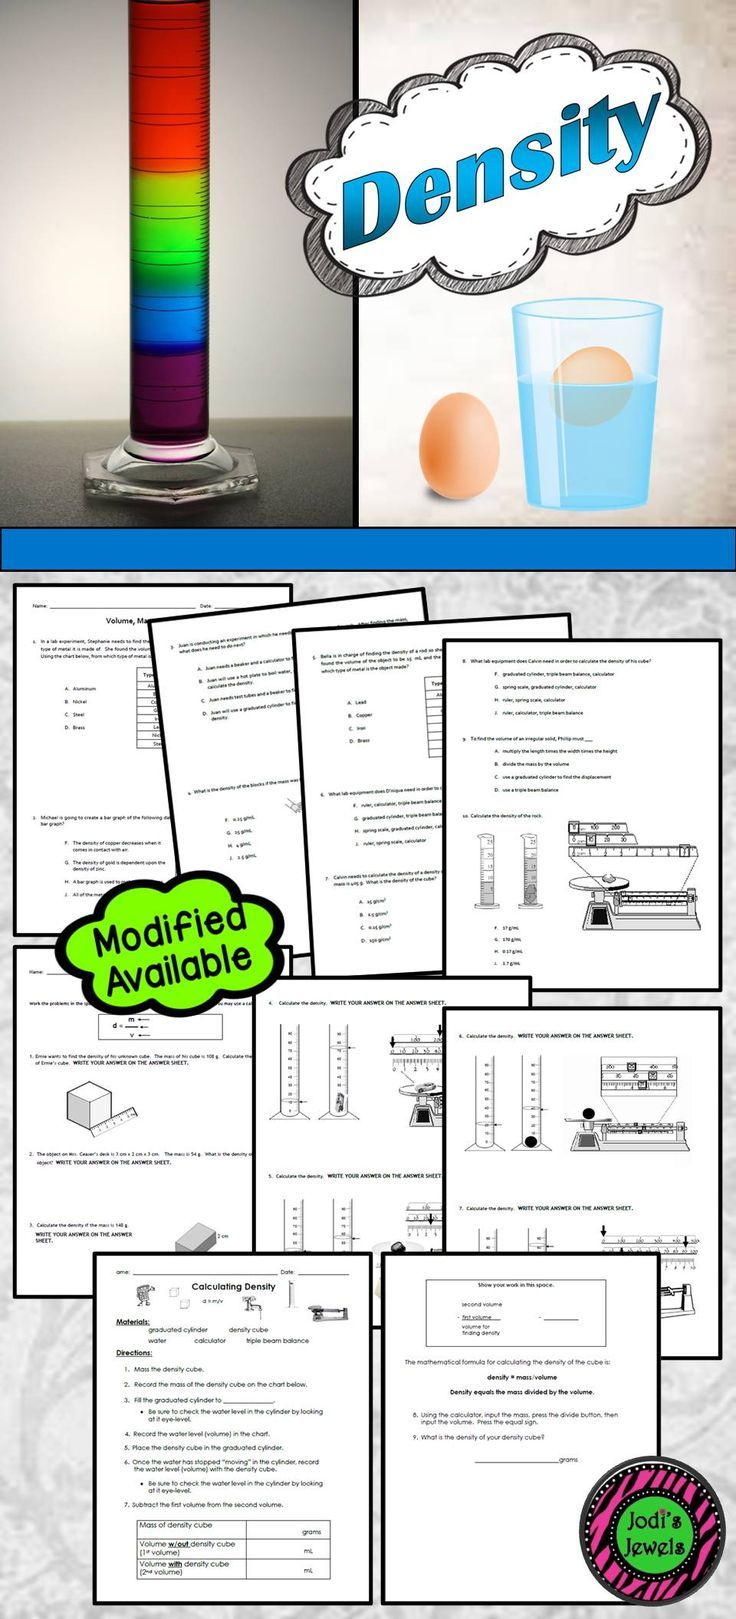 Calculating Density Co Teaching Middle School Science Teacher Matter Science